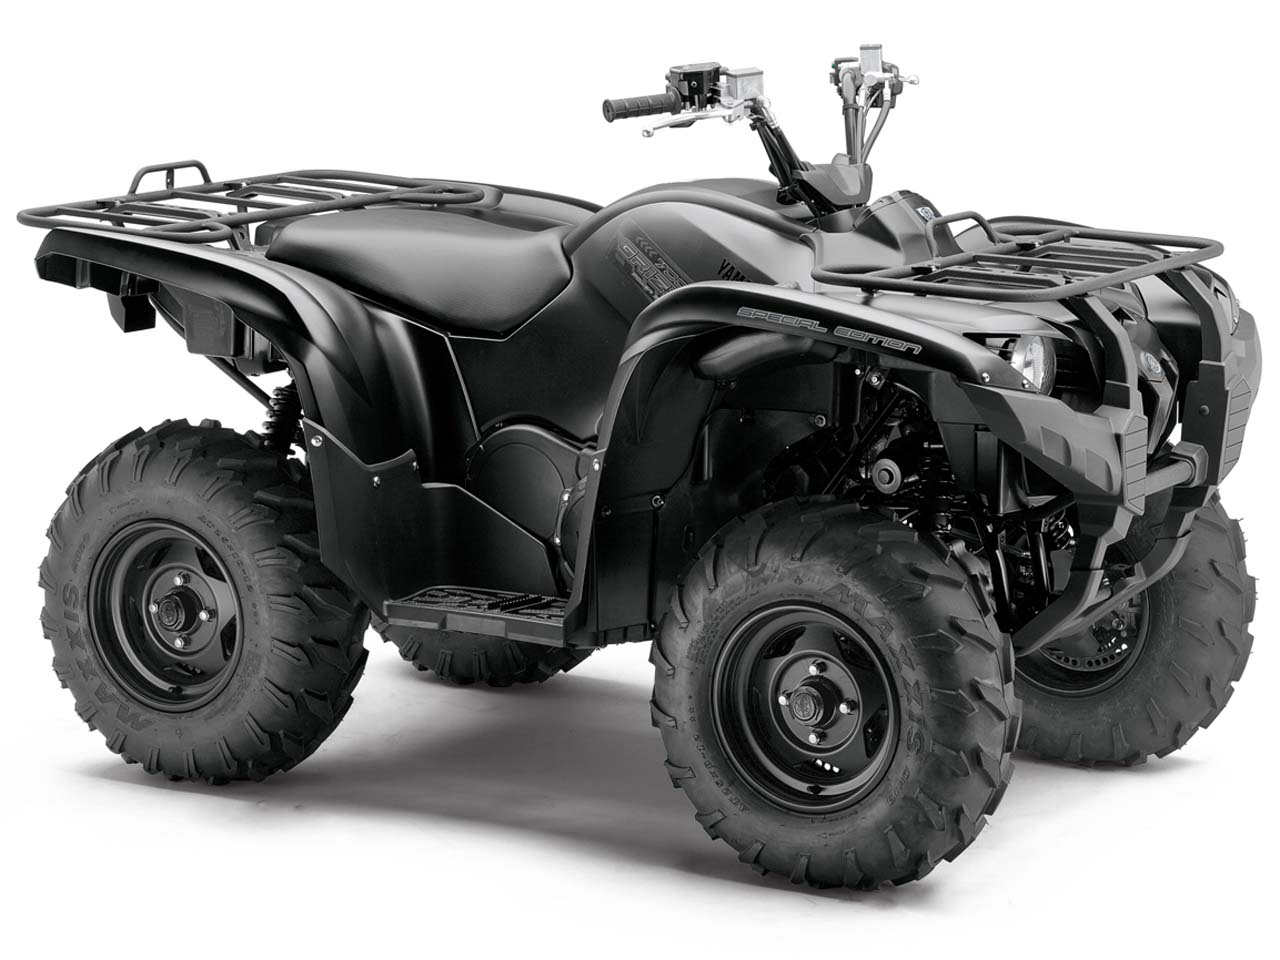 Yamaha's 2013 Special Edition Grizzly 700 and Rhino 700 Vehicles | ATV